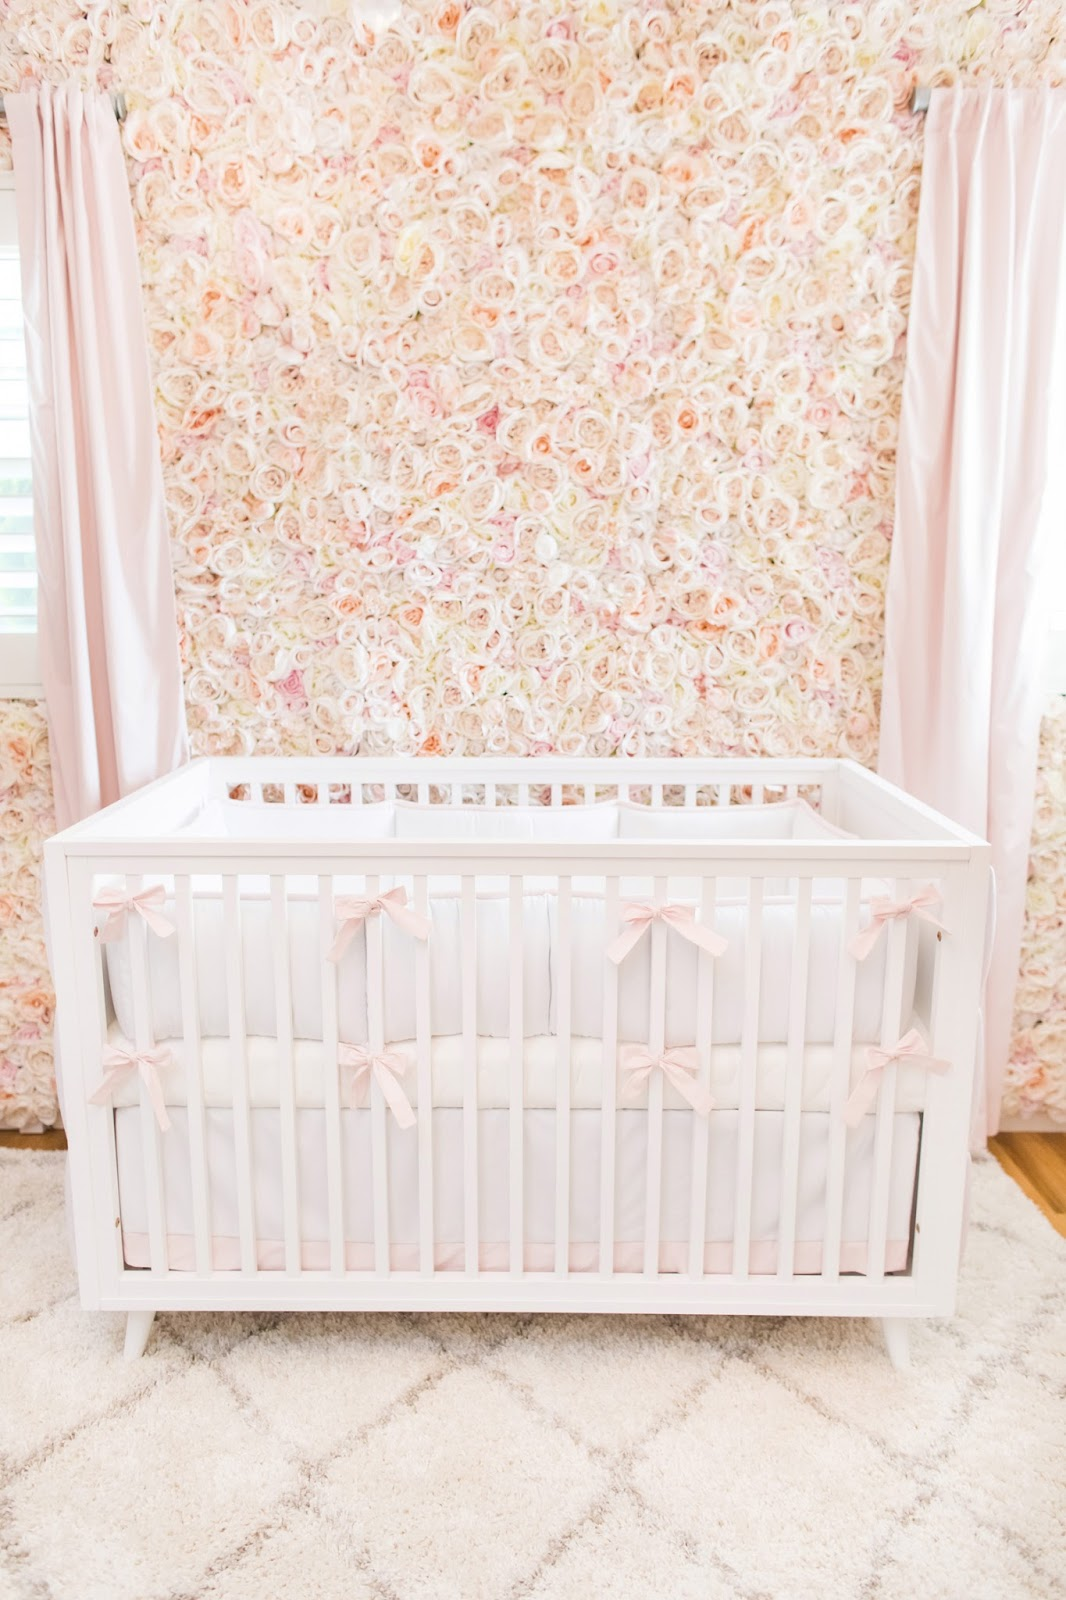 If You Have To Ask What Mattress That Is, Then You Must Be New To My  Designs. Where Thereu0027s A Nursery, Thereu0027s A Nook.